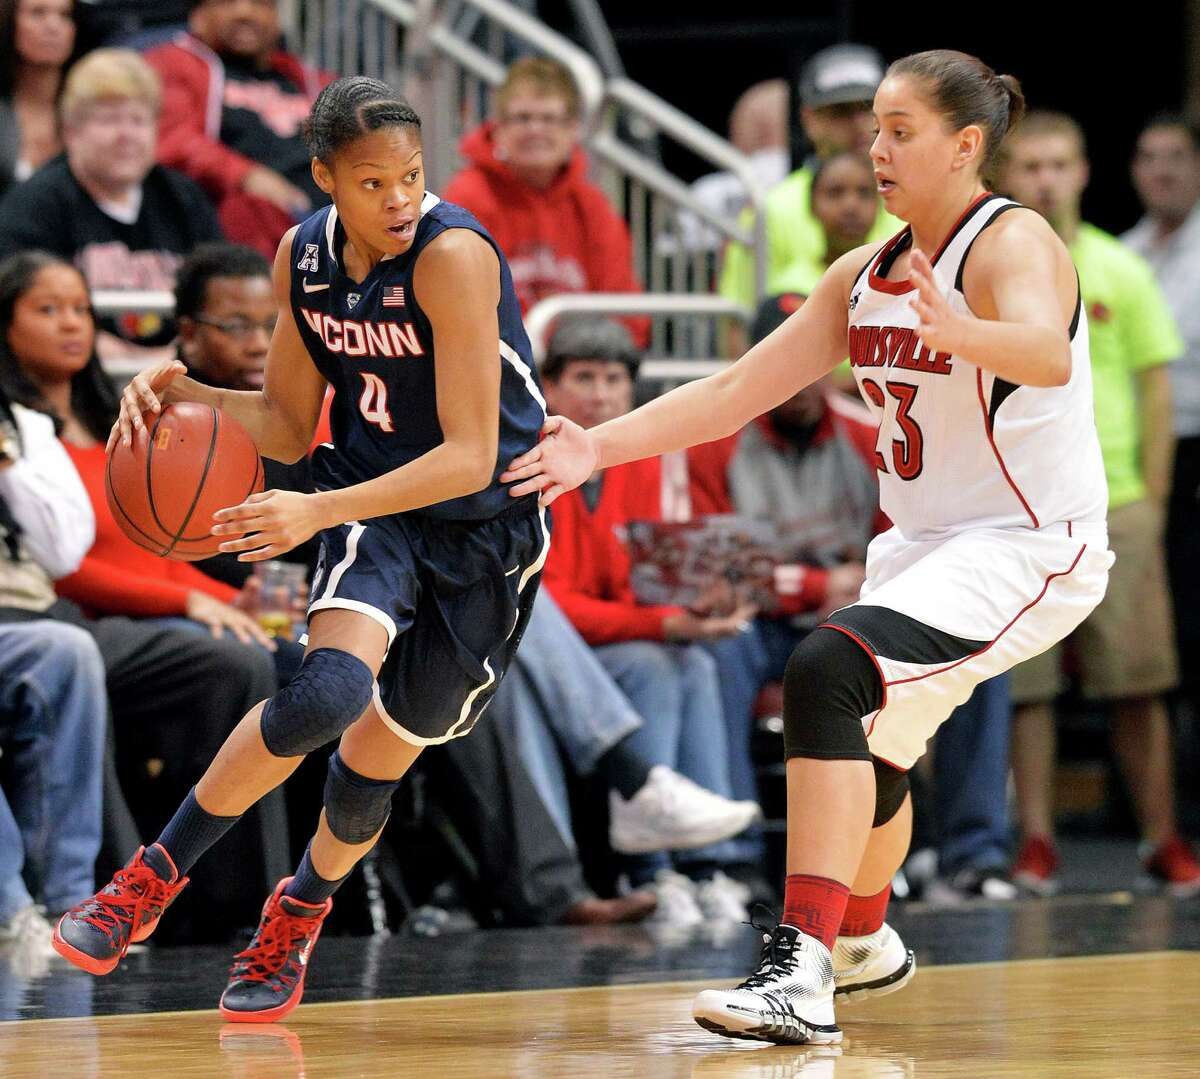 Connecticut Moriah Jefferson, left, attempts to drive around the defense of Louisville's Shoni Schimmel during the first half of an NCAA college basketball game, Monday, March 3, 2014, in Louisville, Ky.